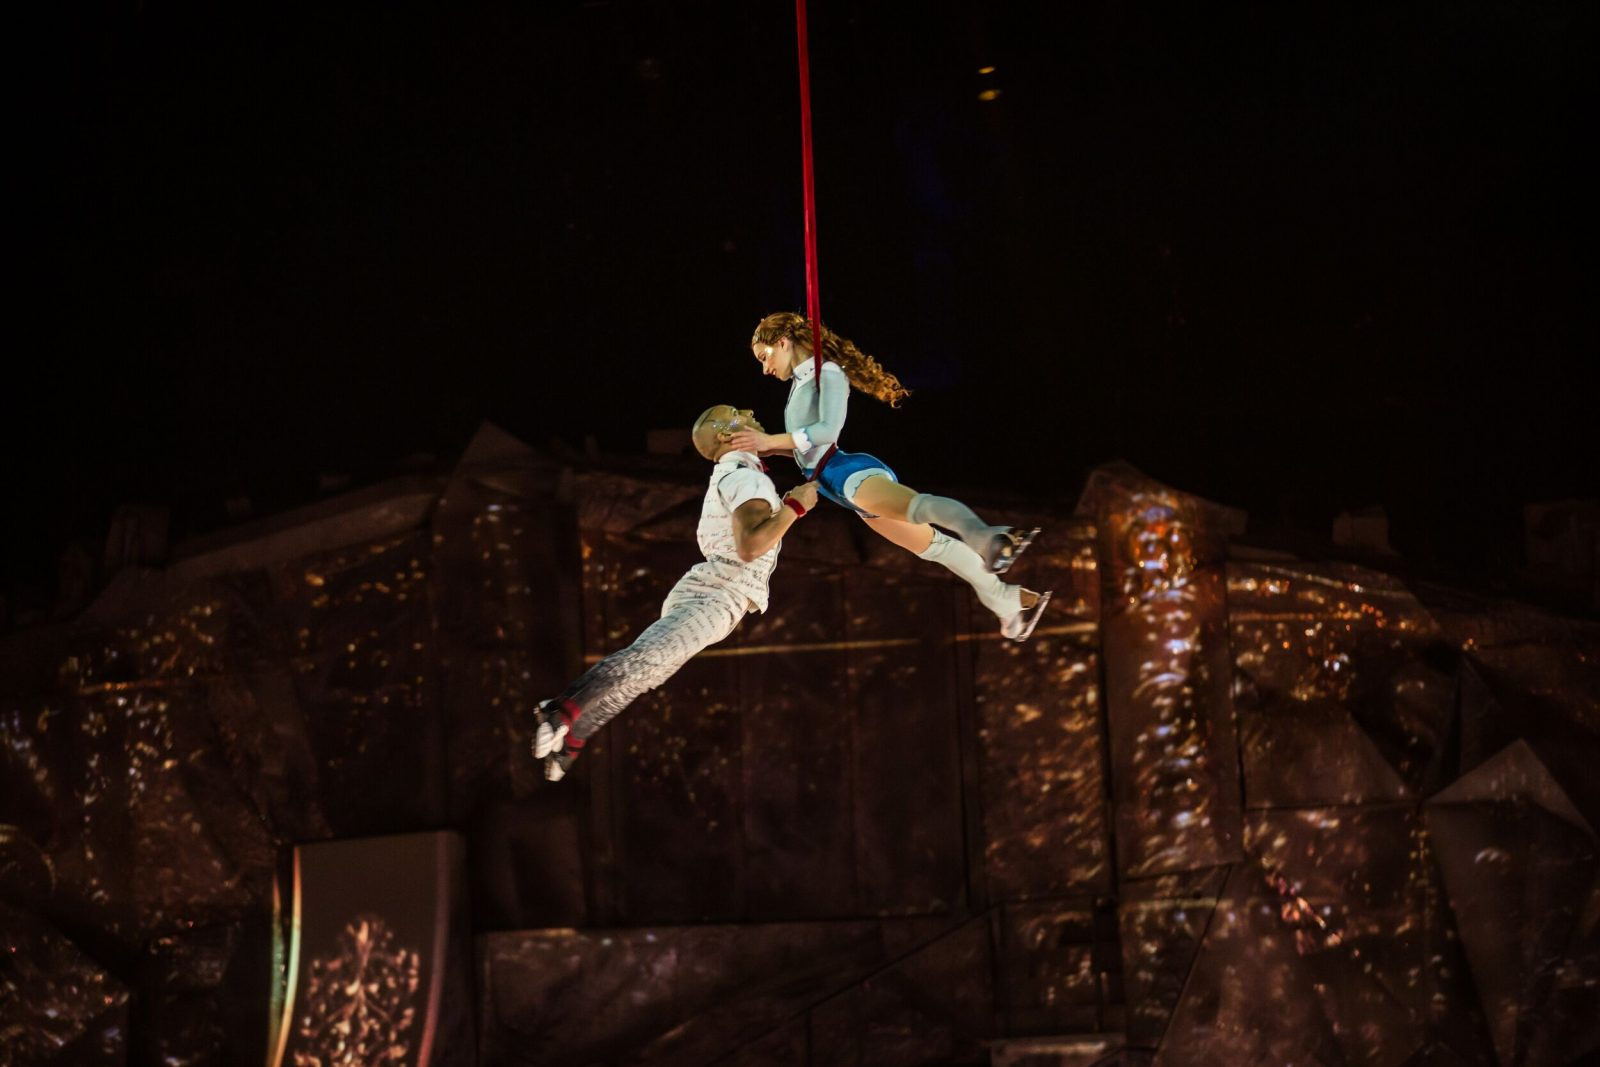 male and female performer hanging onto each other with legs raised, suspended in the air by red silk